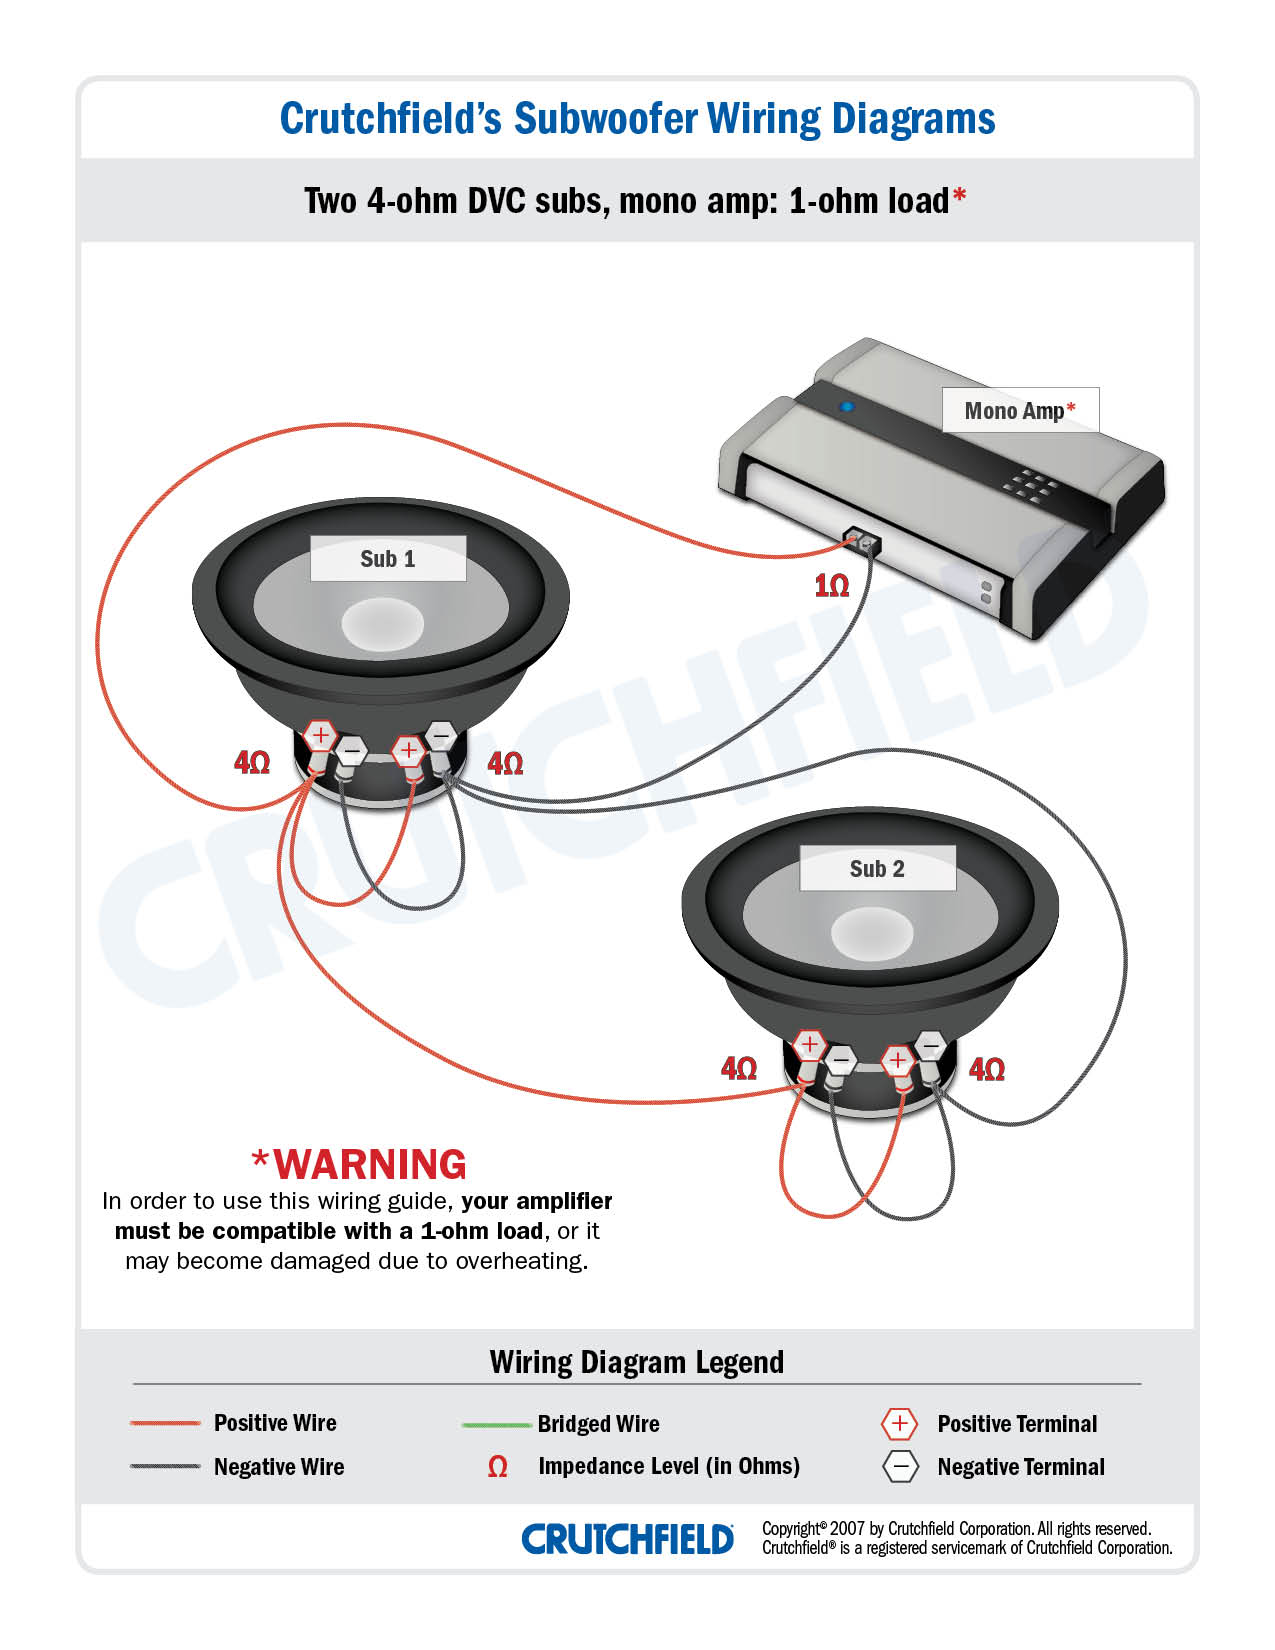 Wiring Subwoofers — What'S All This About Ohms?